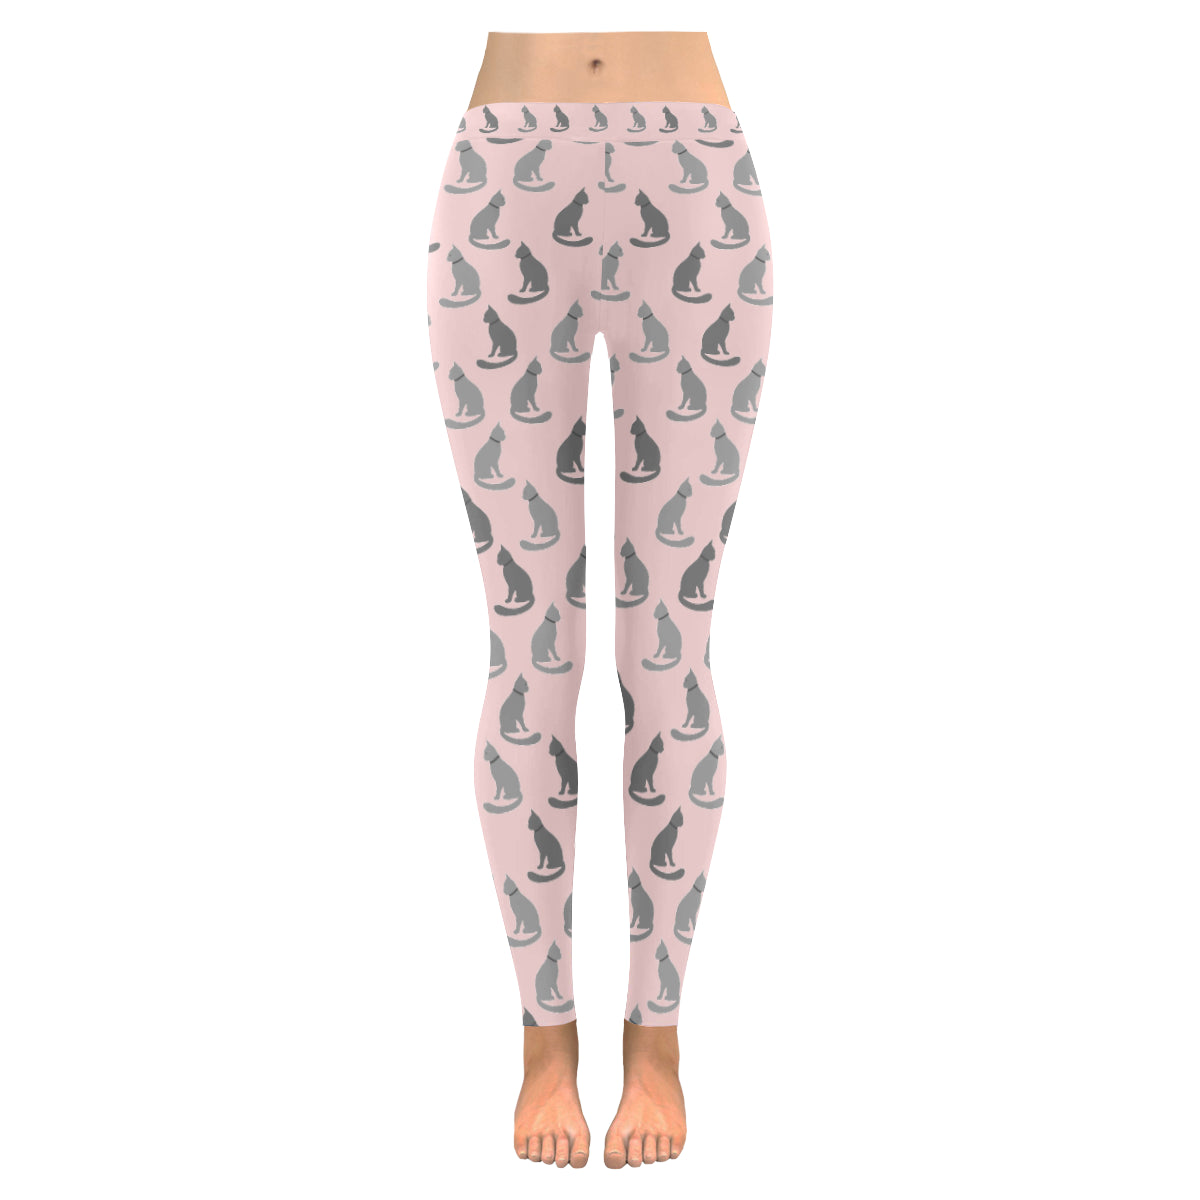 Legging au design chats gris rose